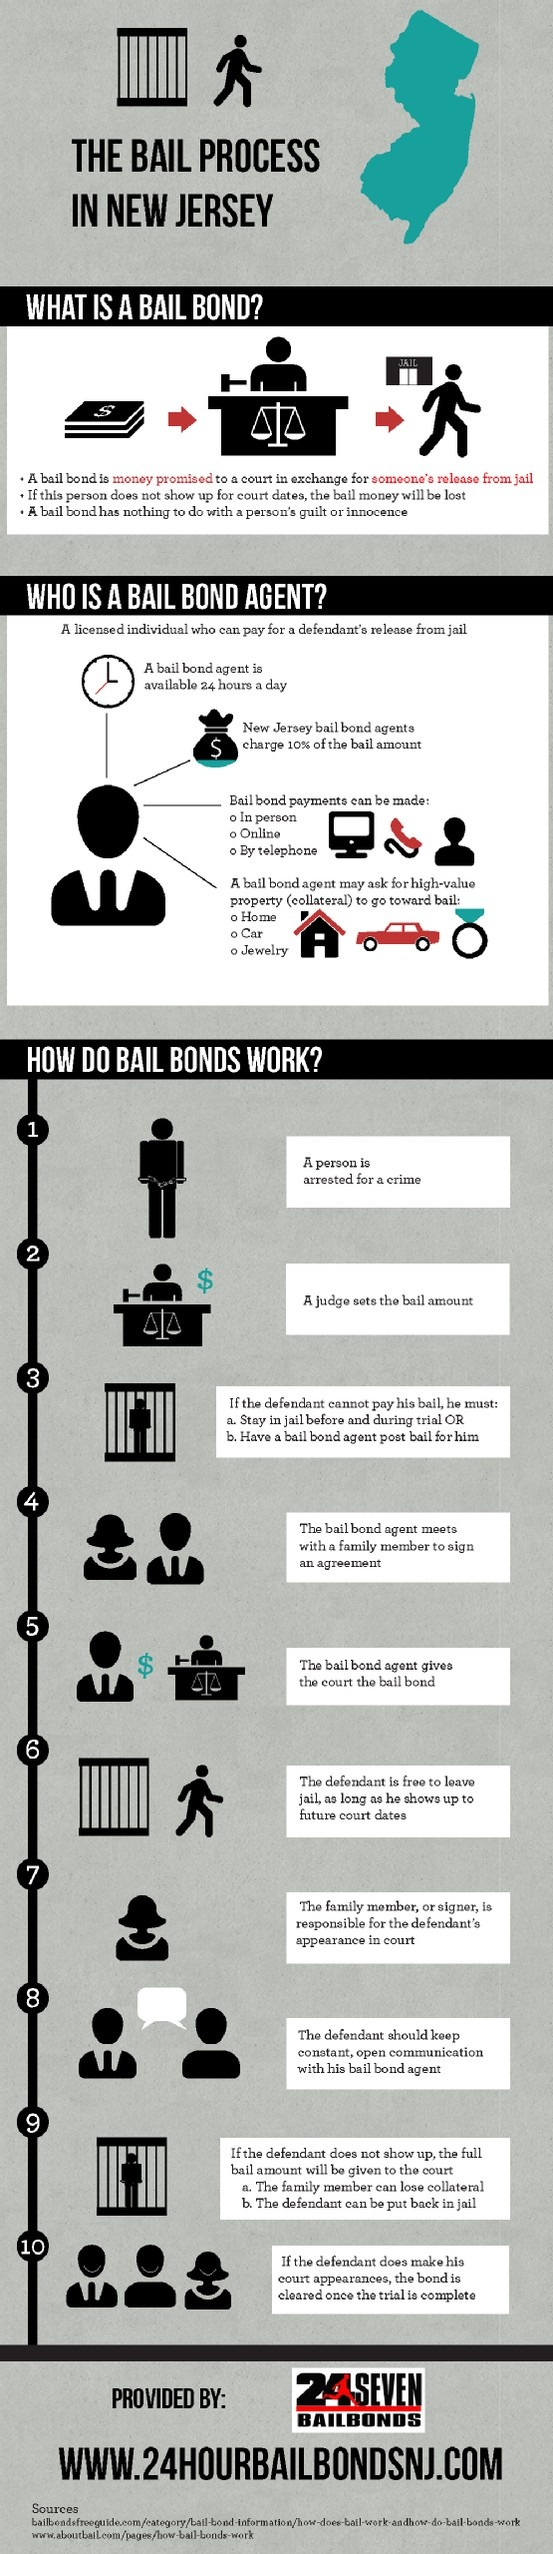 Did you know that bail bond agents can ask for high-value property as collateral…